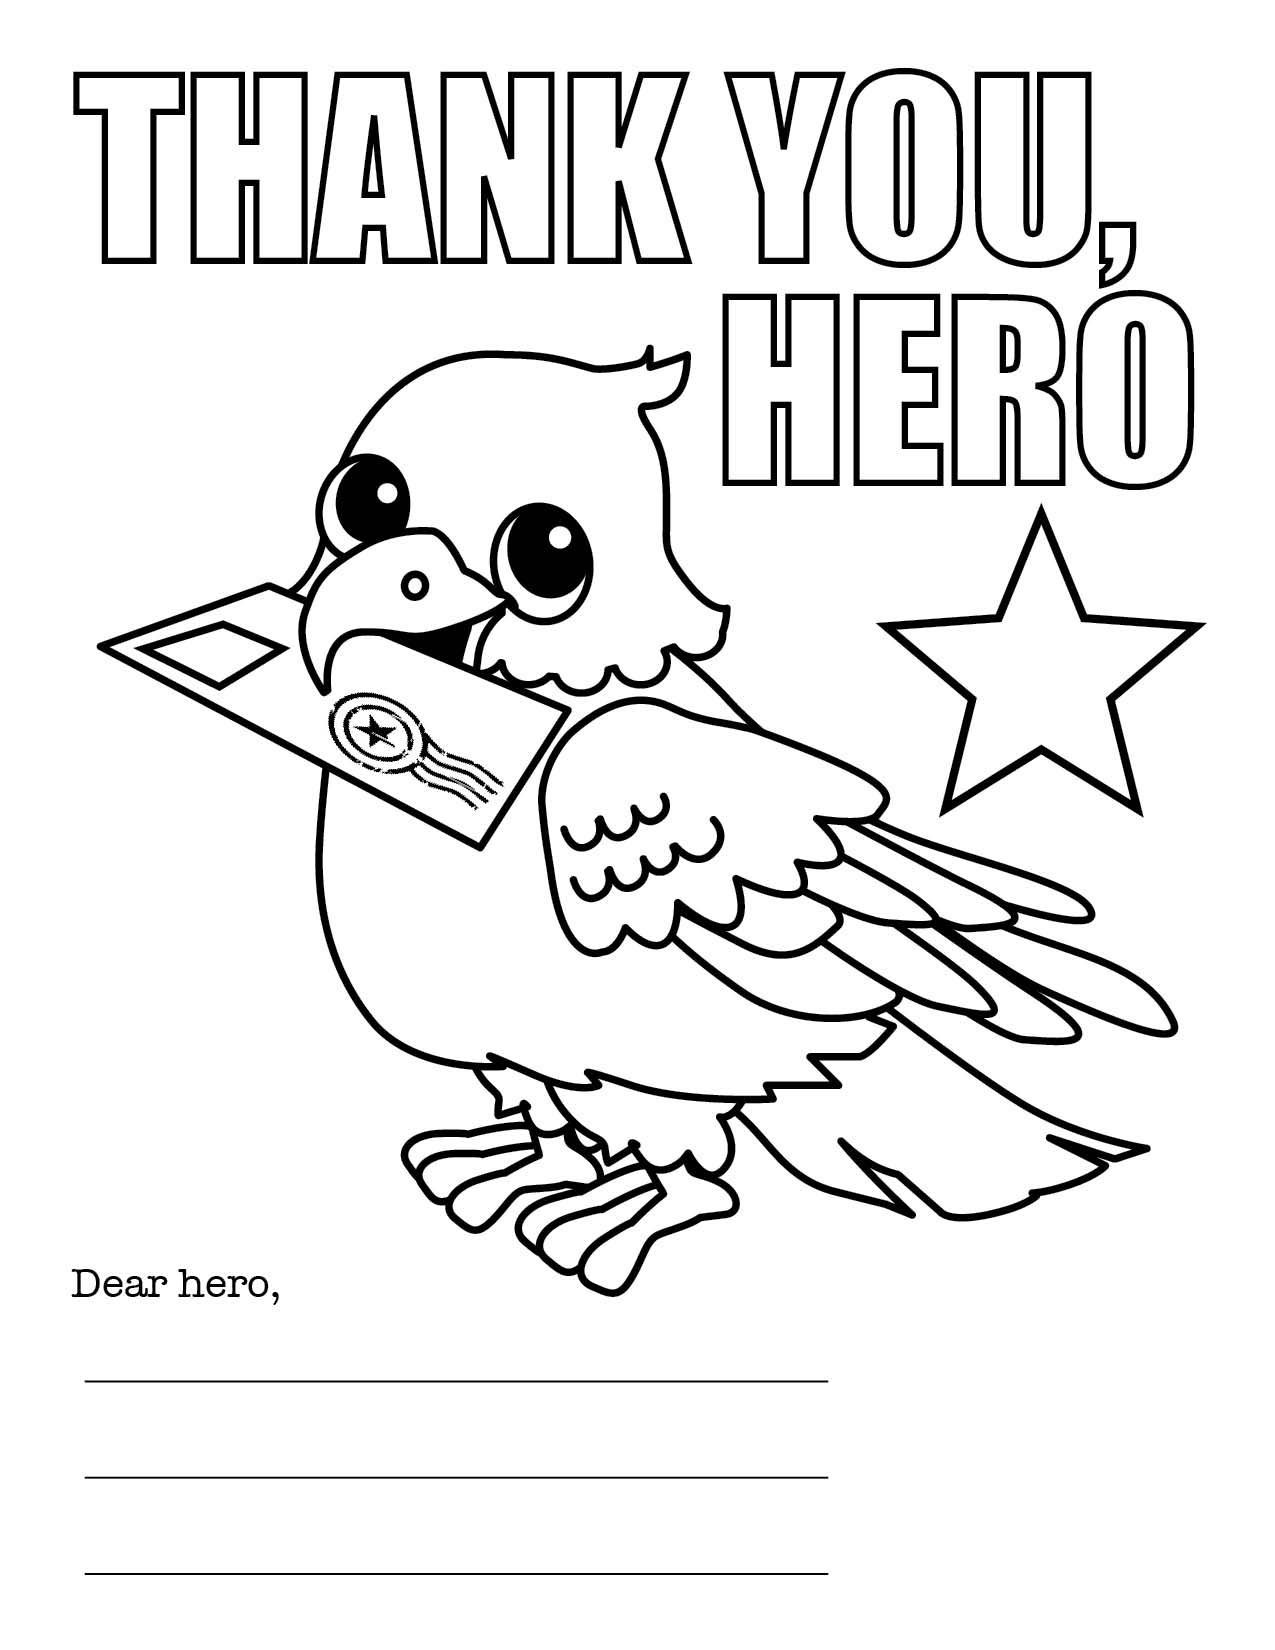 Good Veterans Day Drawings | Christmas coloring pages ...